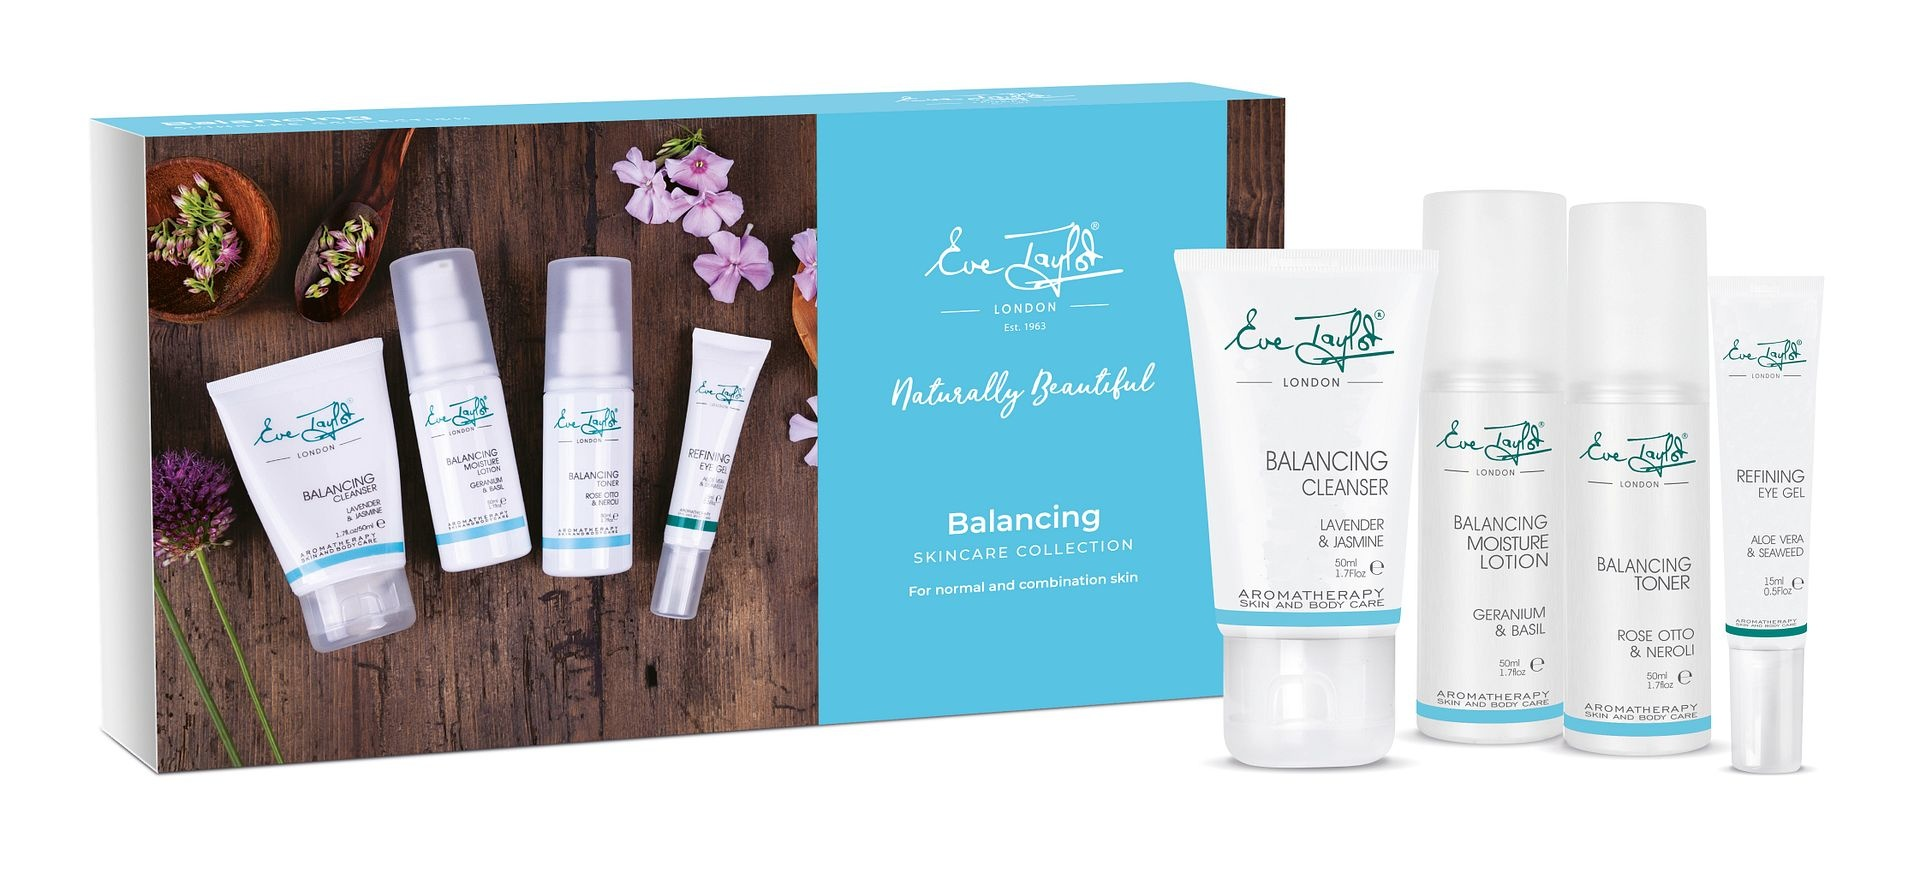 Eve Taylor Balancing Skincare Collection Kit - Eve Taylor